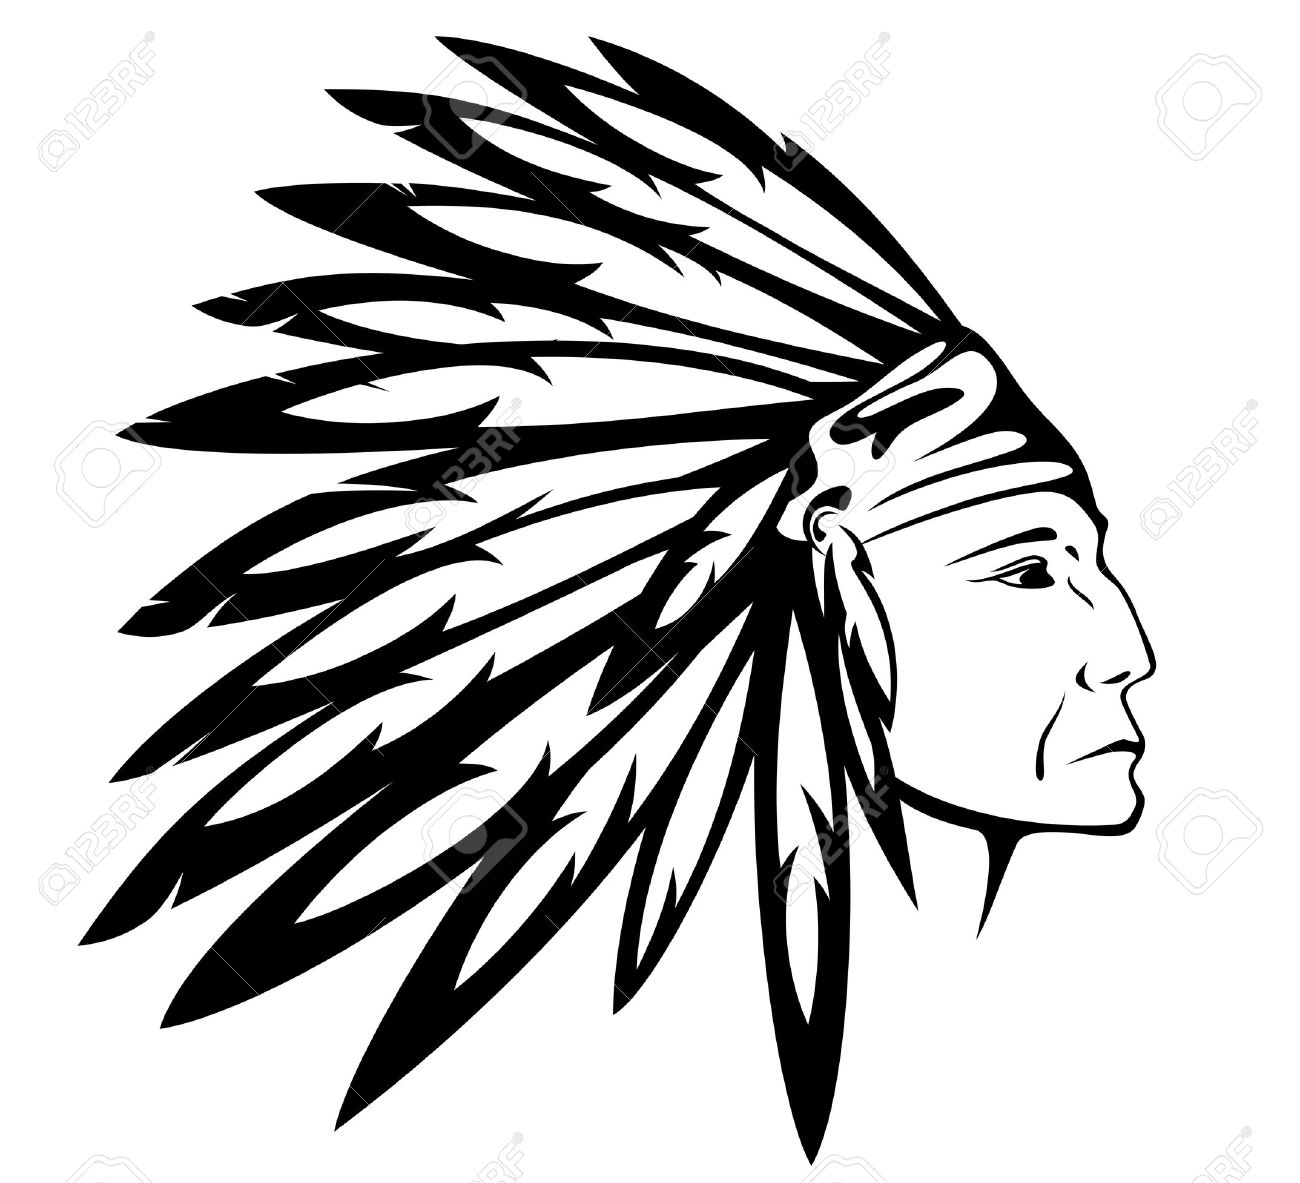 red indian chief wearing traditional headdress royalty free cliparts rh 123rf com